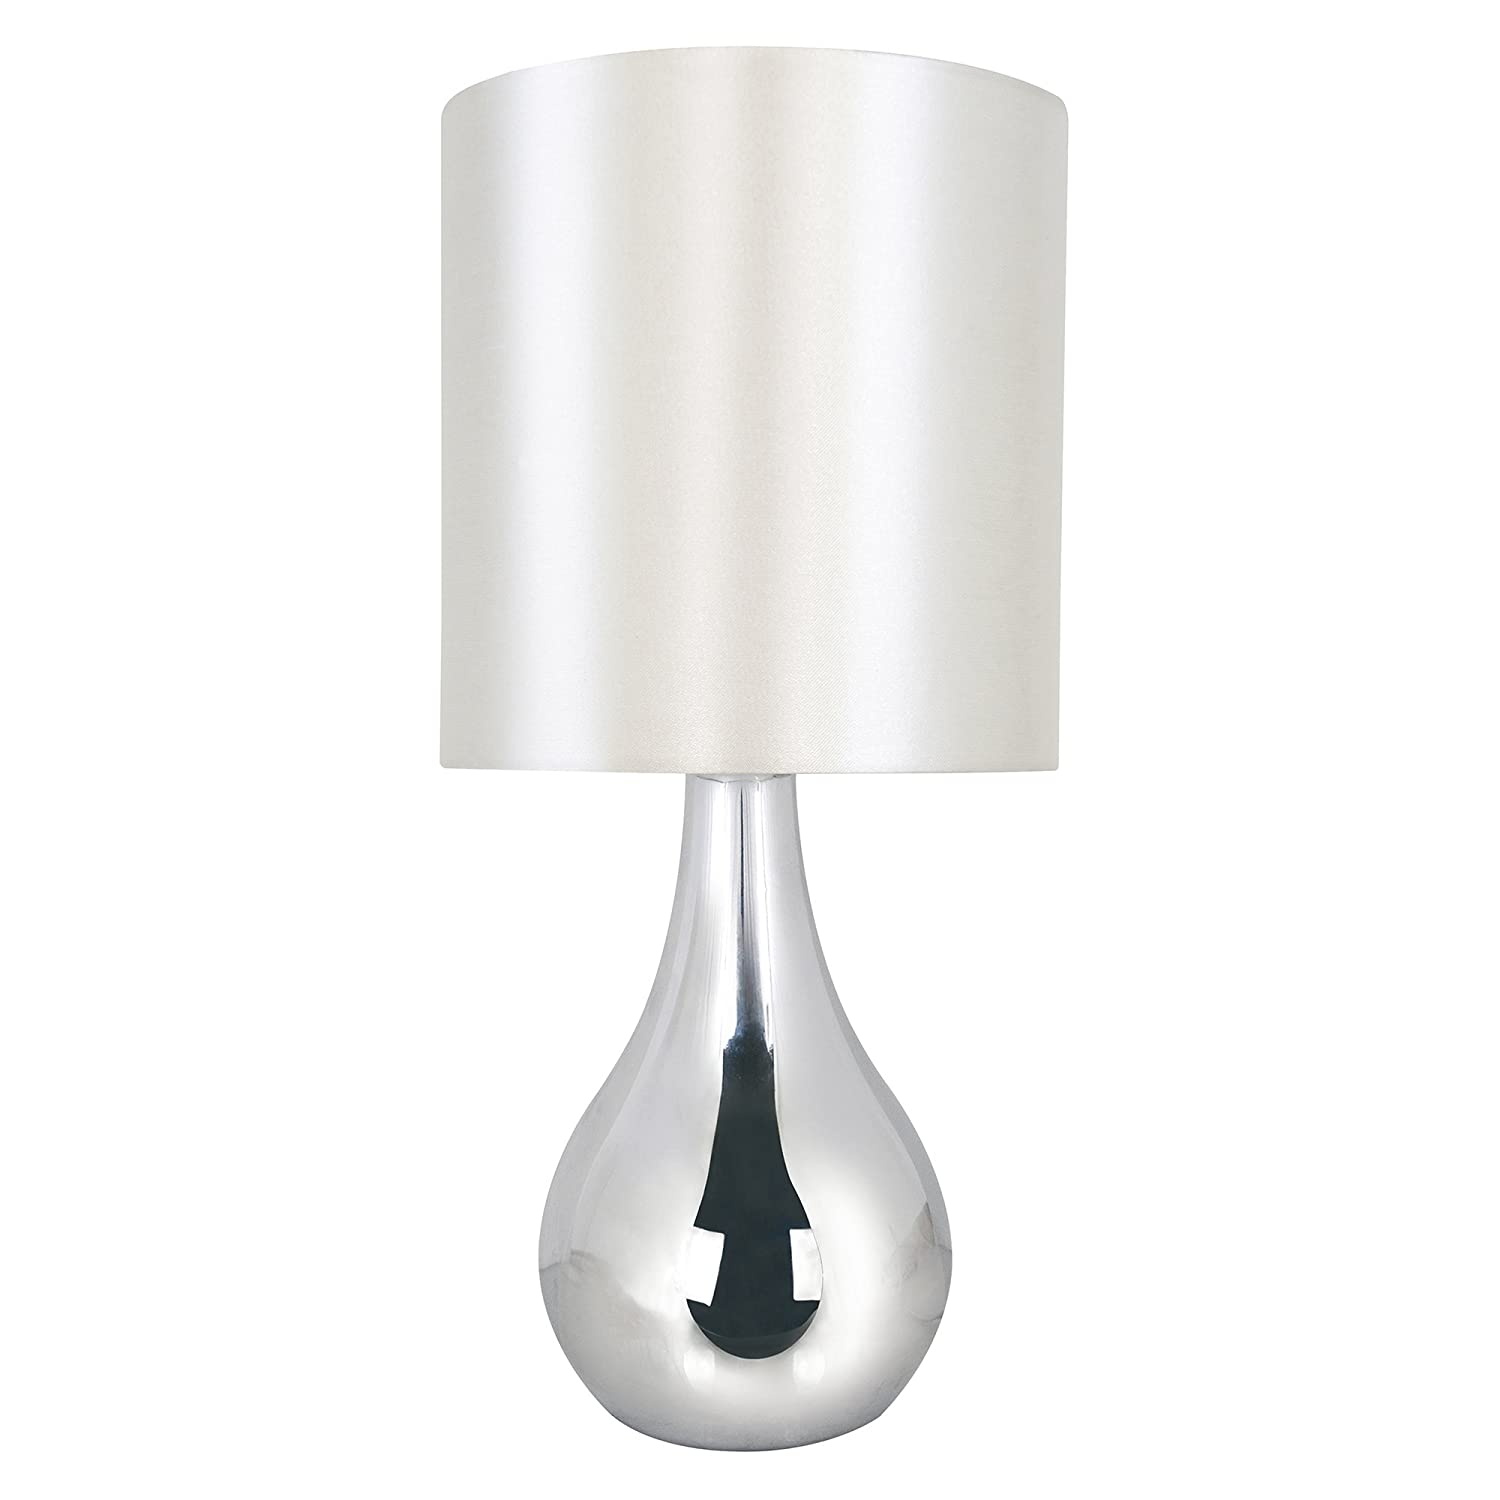 Lloytron Eclipse Touch Table Lamp, Chrome: Amazon.co.uk: Lighting